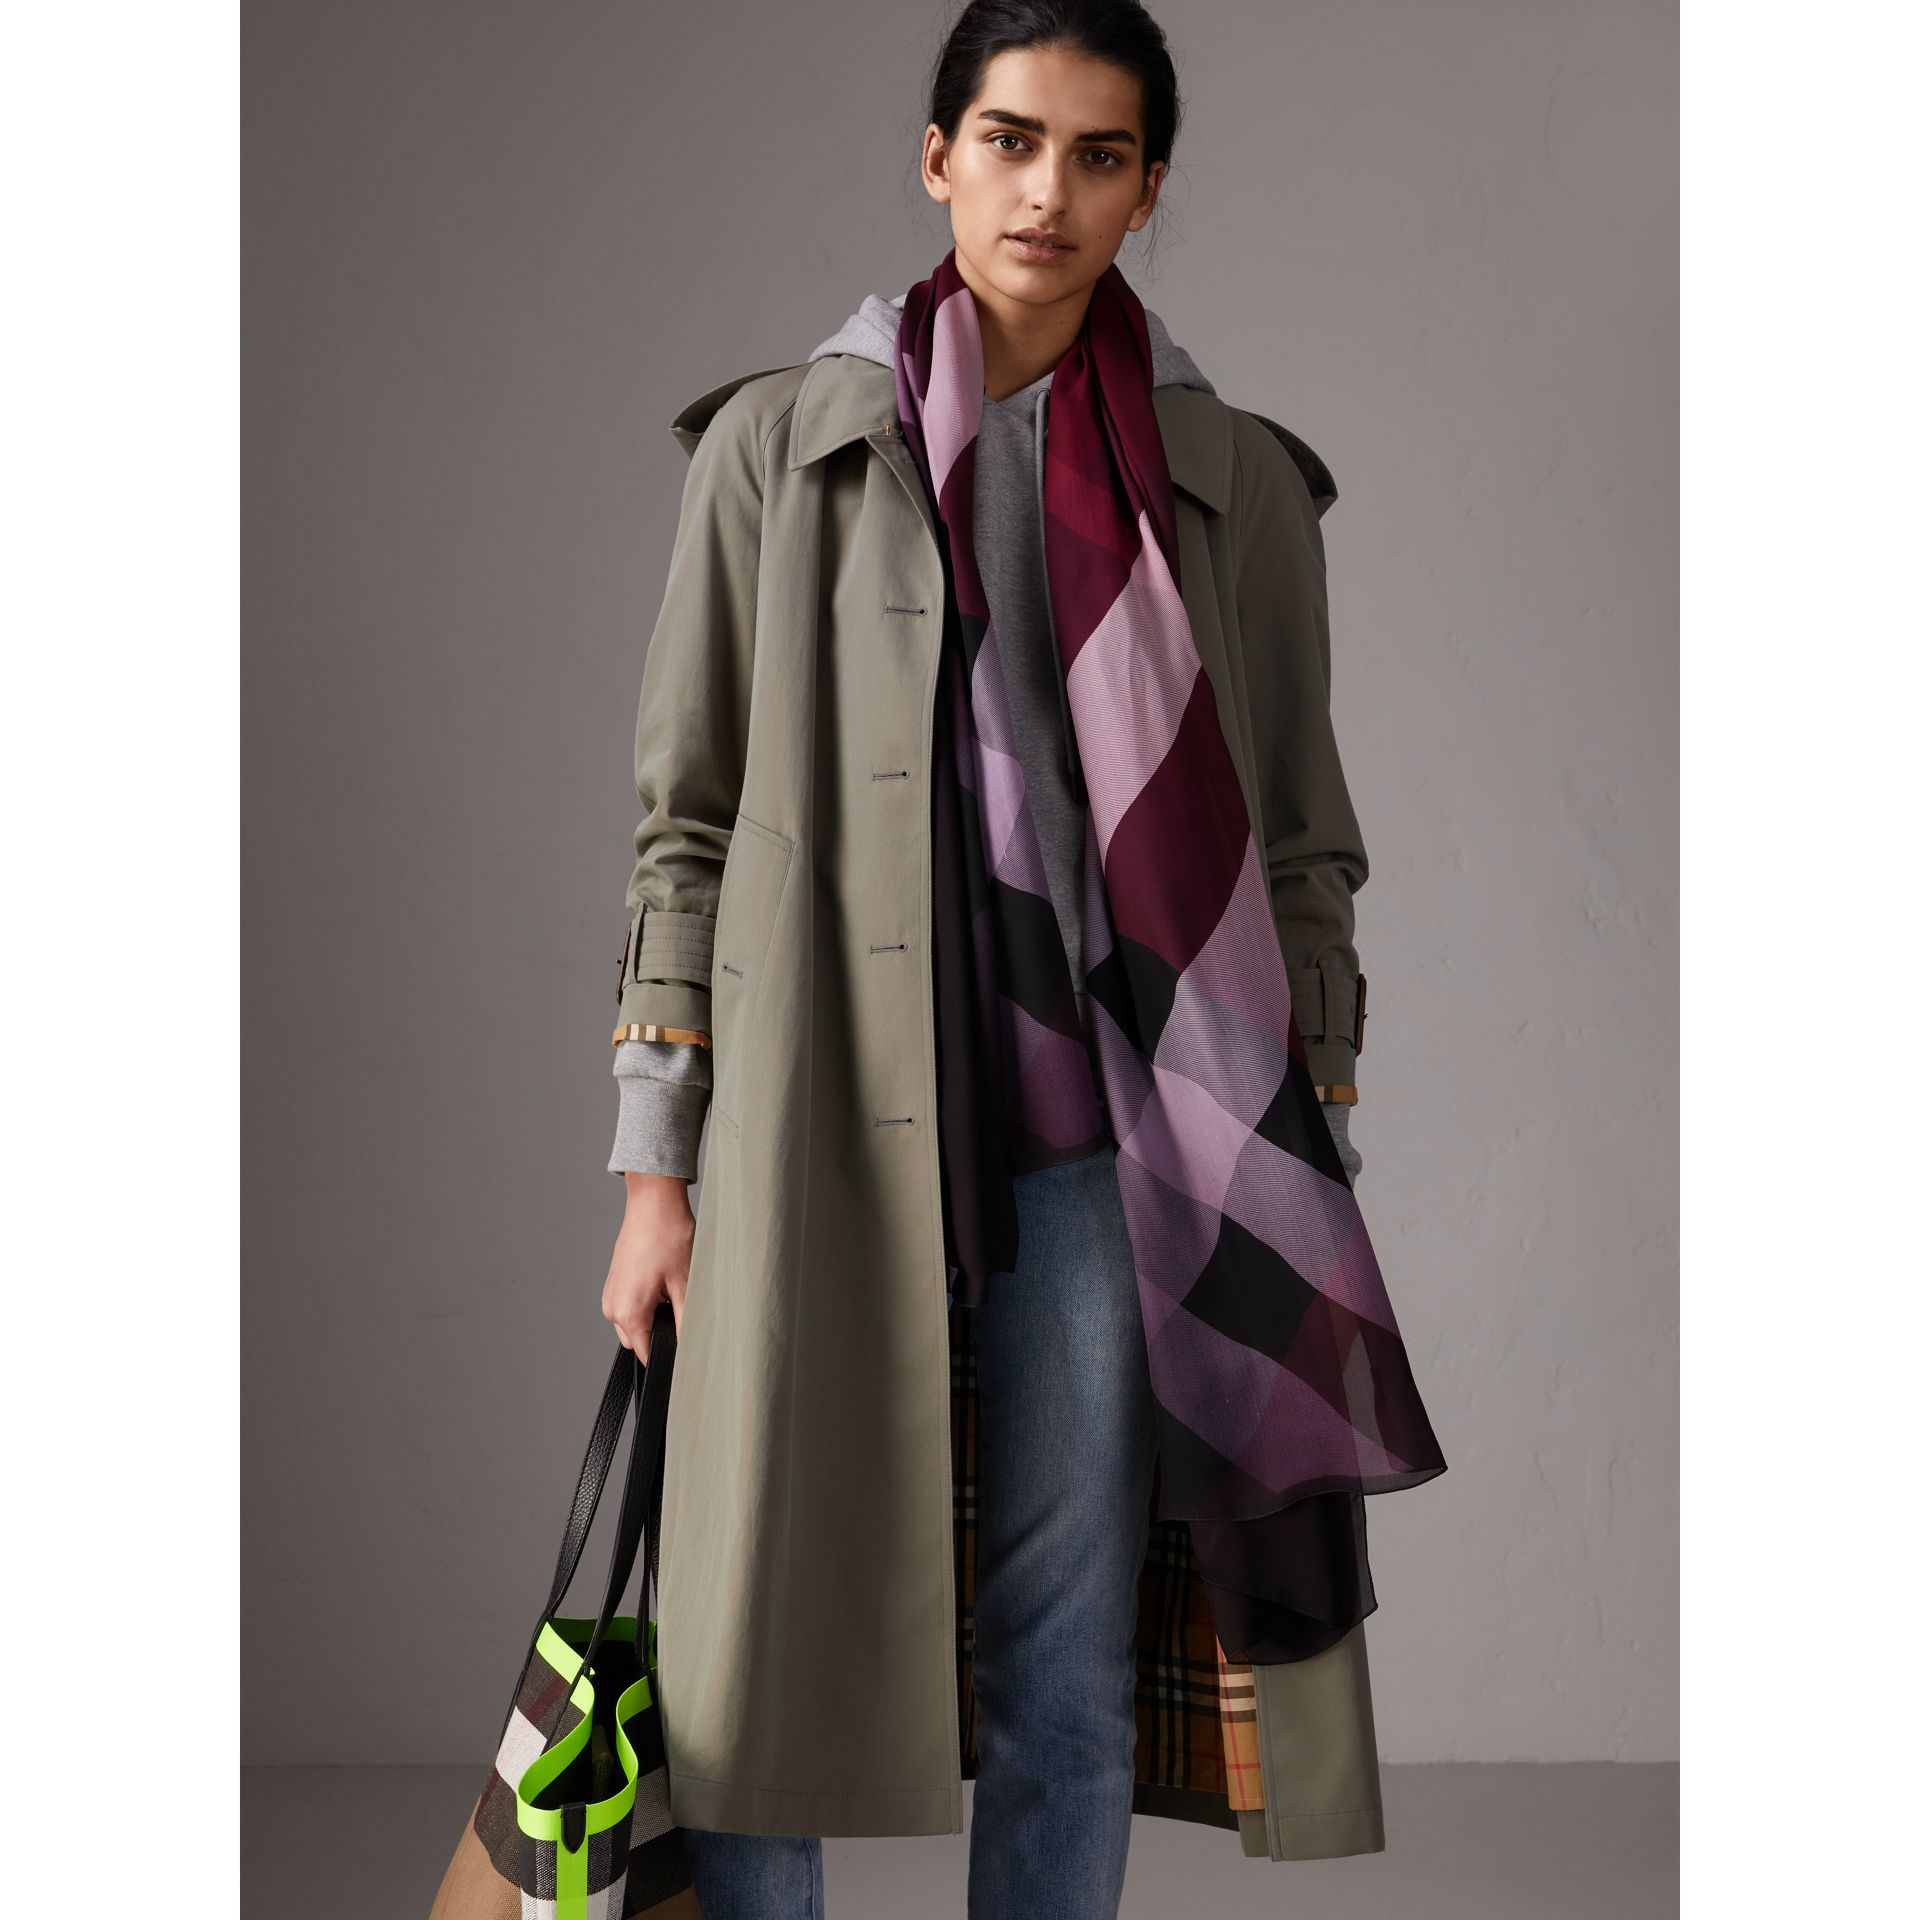 Ombré Washed Check Silk Scarf in Plum - Women | Burberry - gallery image 3